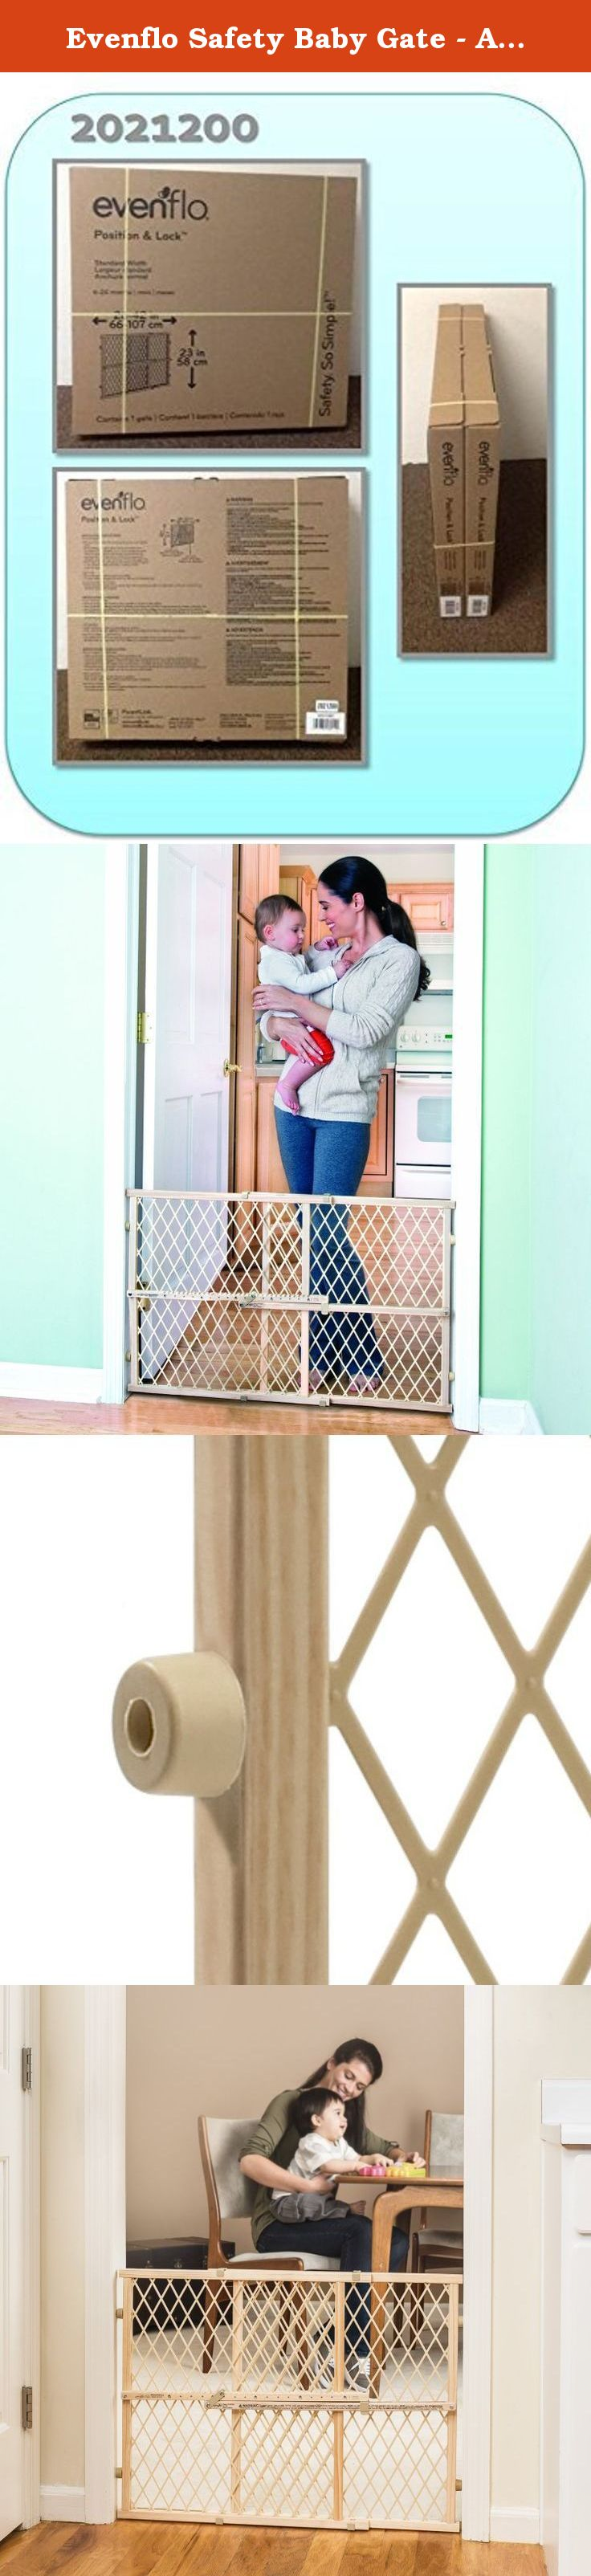 evenflo safety baby gate  adjustable extra wide and tall modern  - evenflo safety baby gate  adjustable extra wide and tall modern retractablegates for stairs